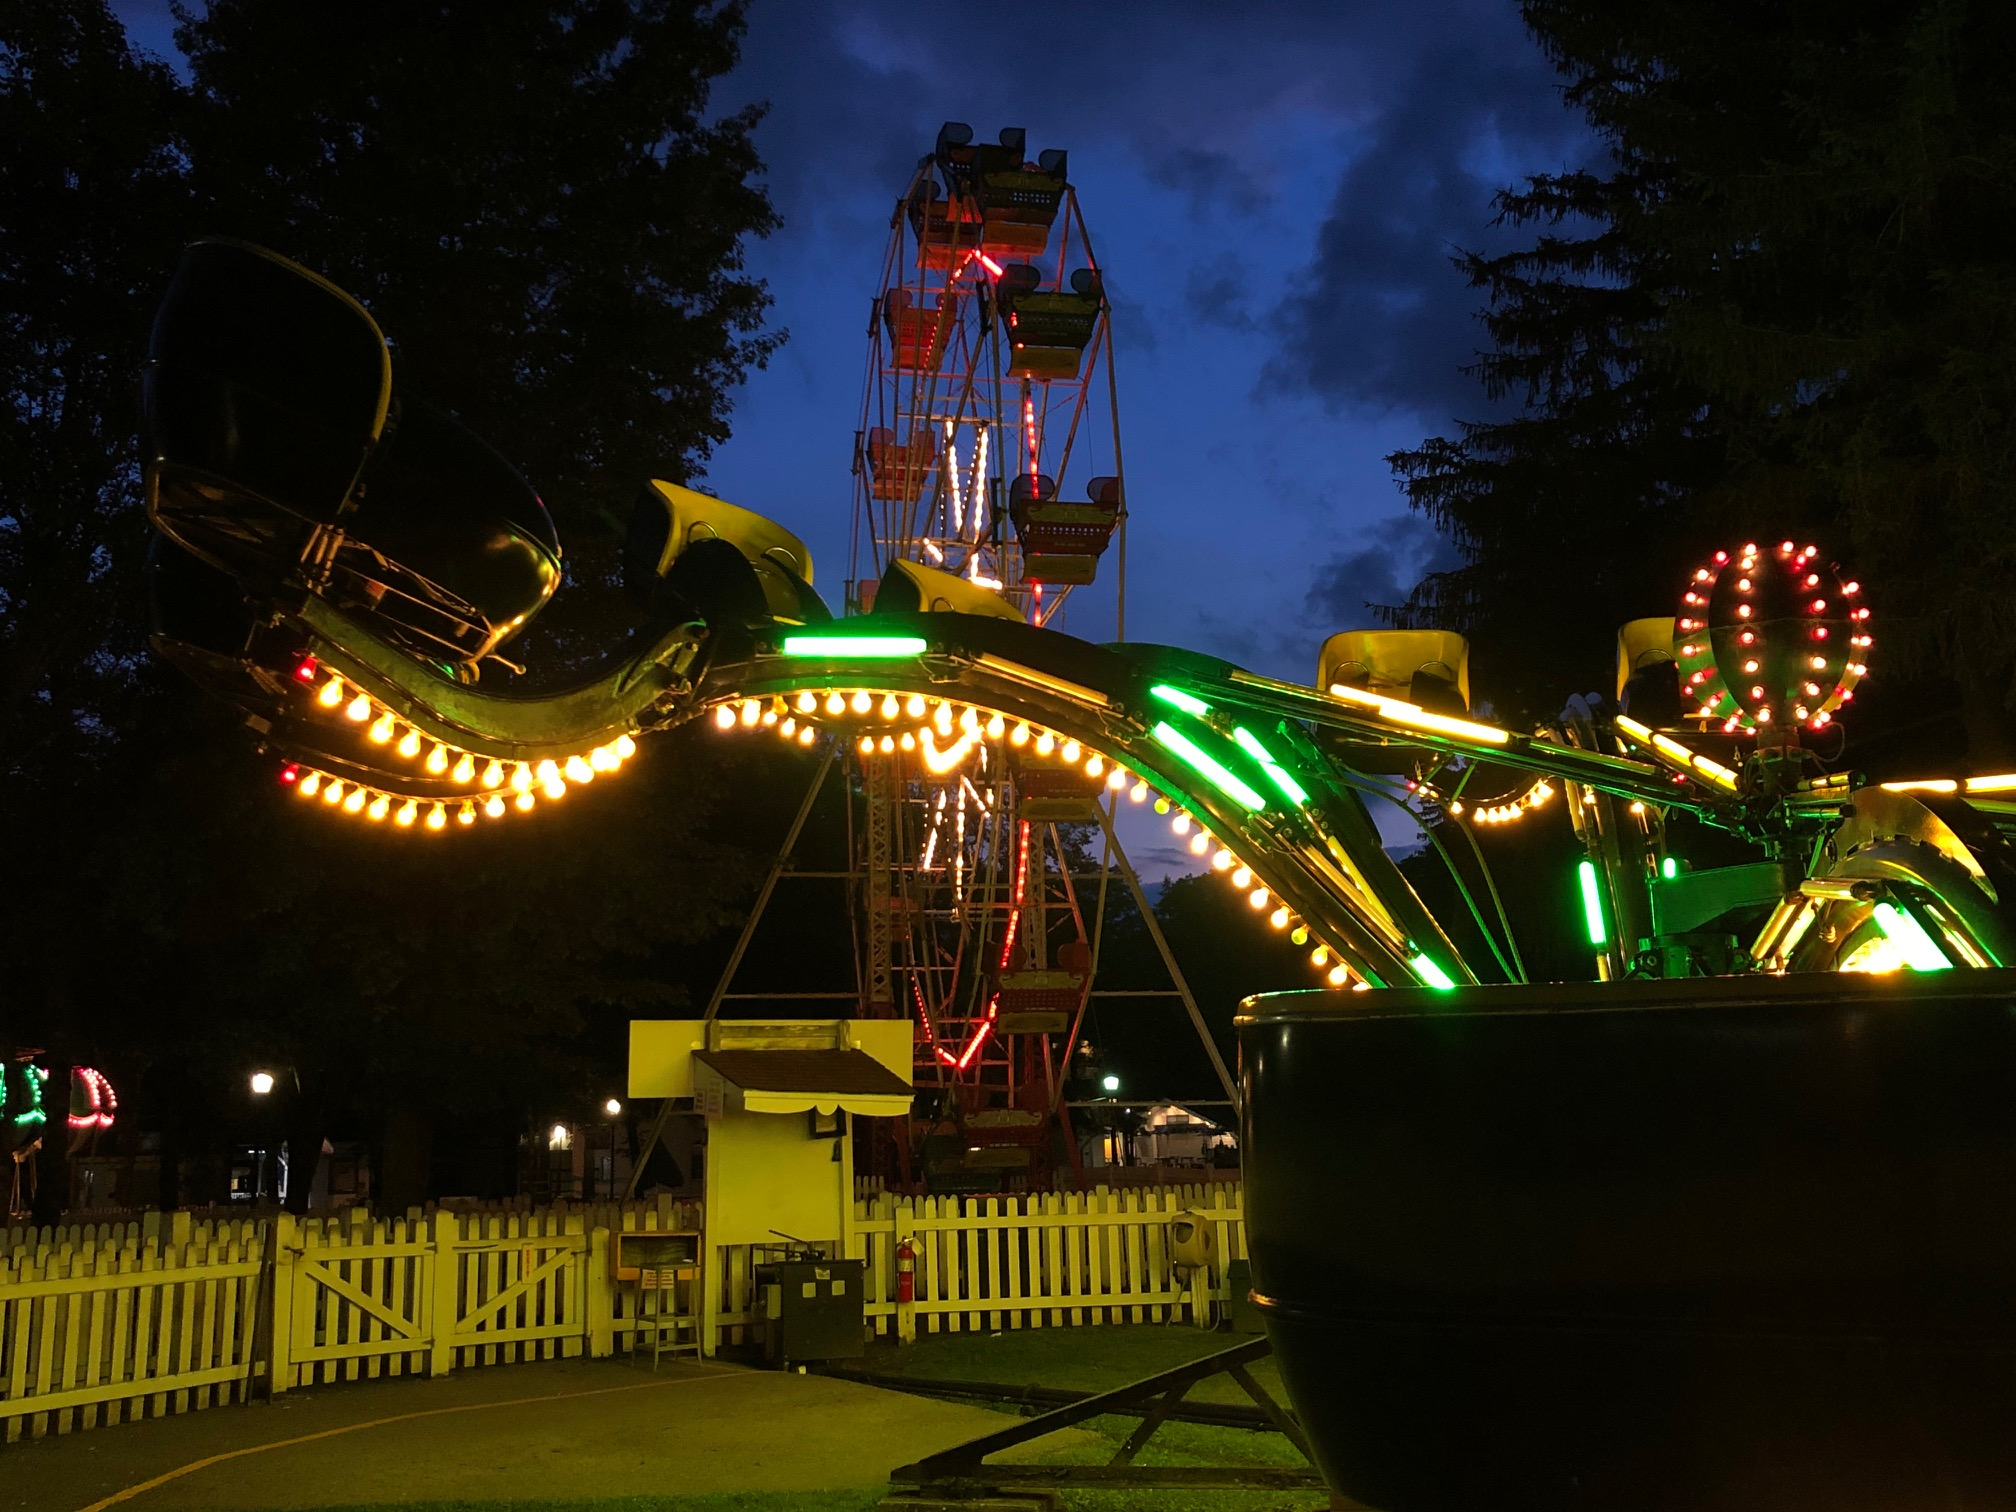 Photo of Spider and Ferris Wheel at Night